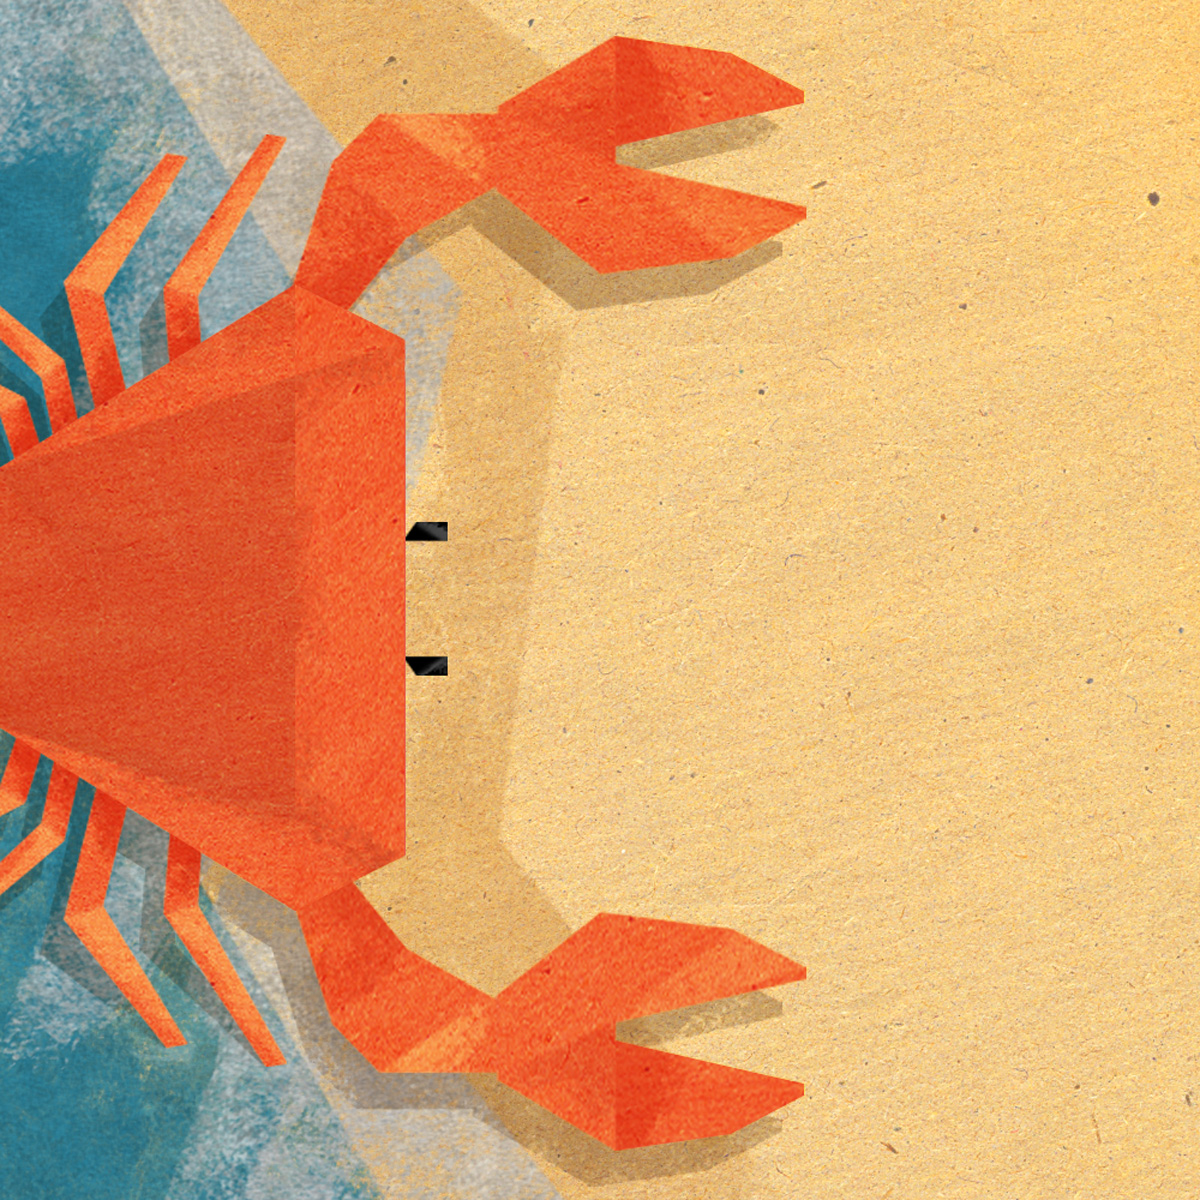 Illustration of the letter C imagined as a crab on a beach